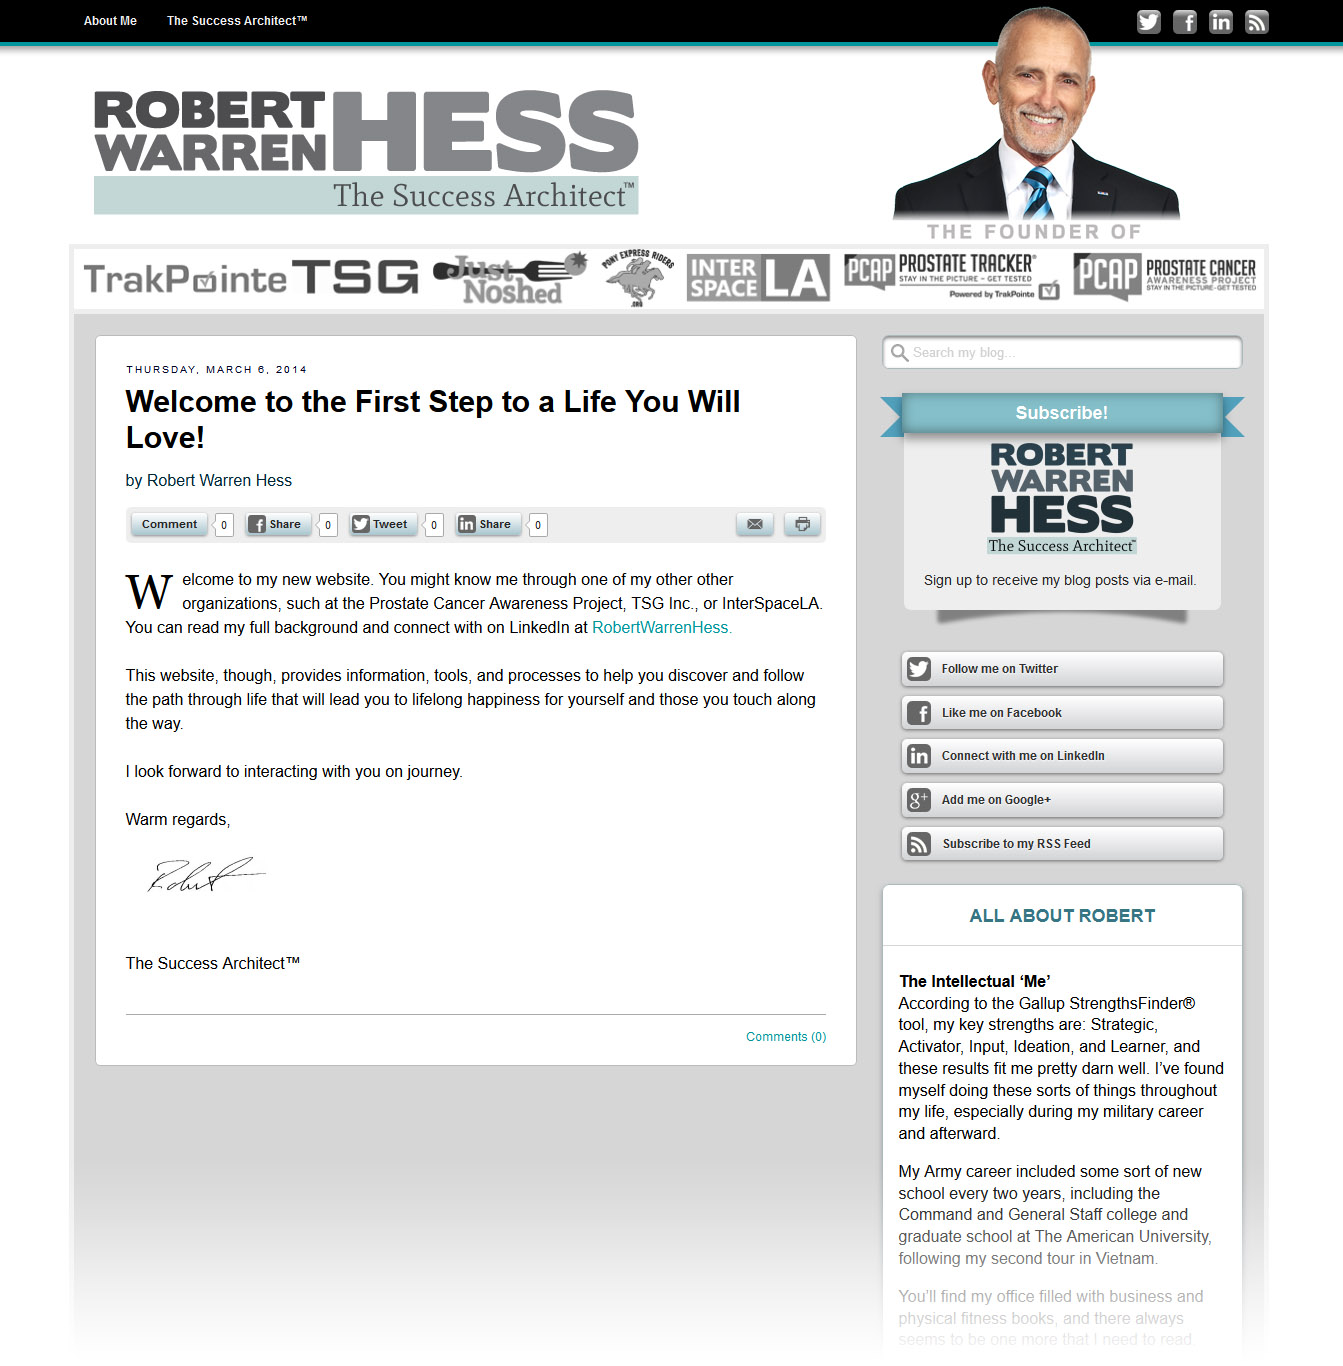 RobertWarrenHess.com Web Design and Implementation